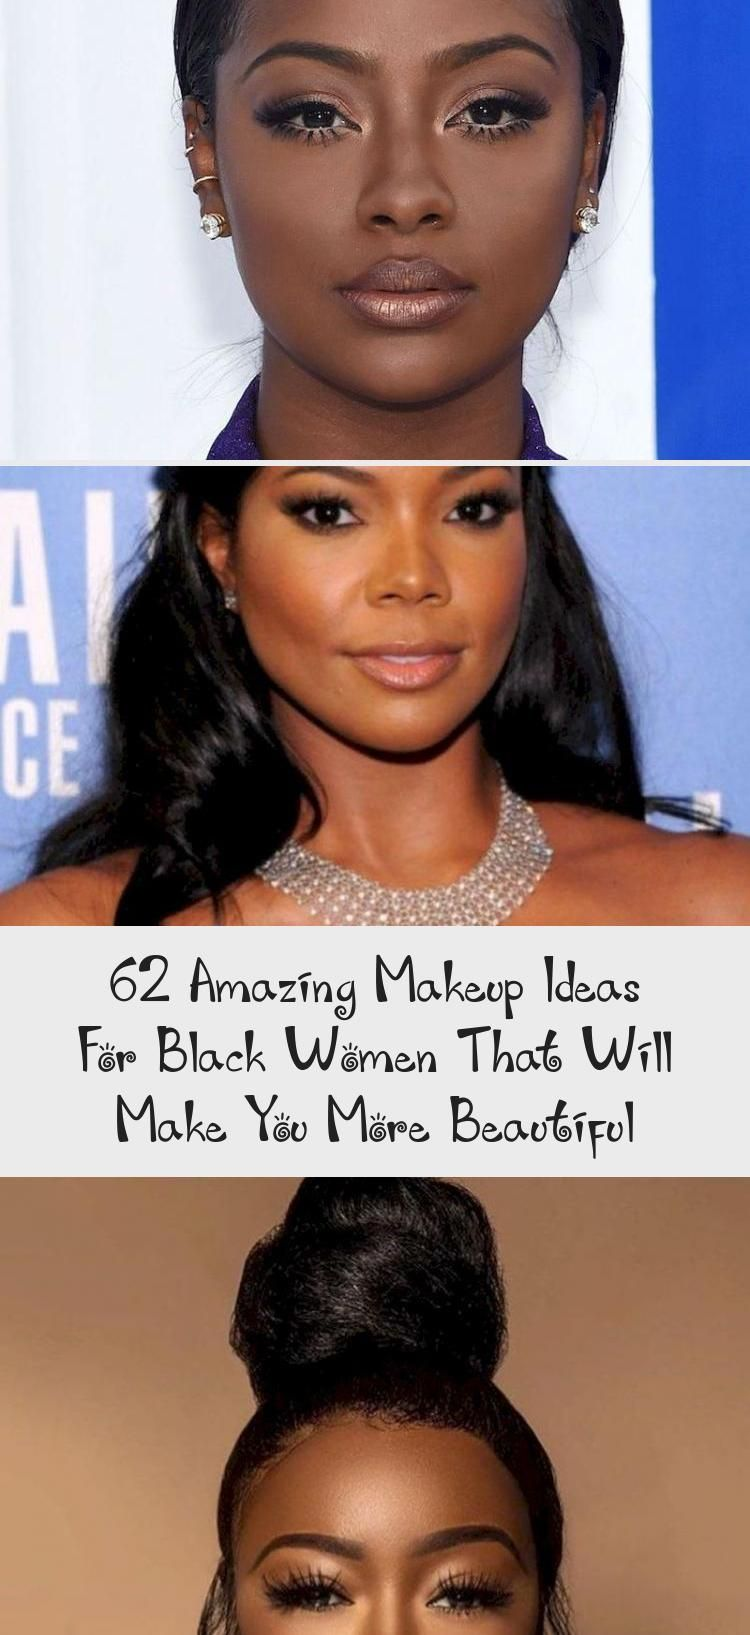 62 Amazing Makeup Ideas For Black Women That Will Make You